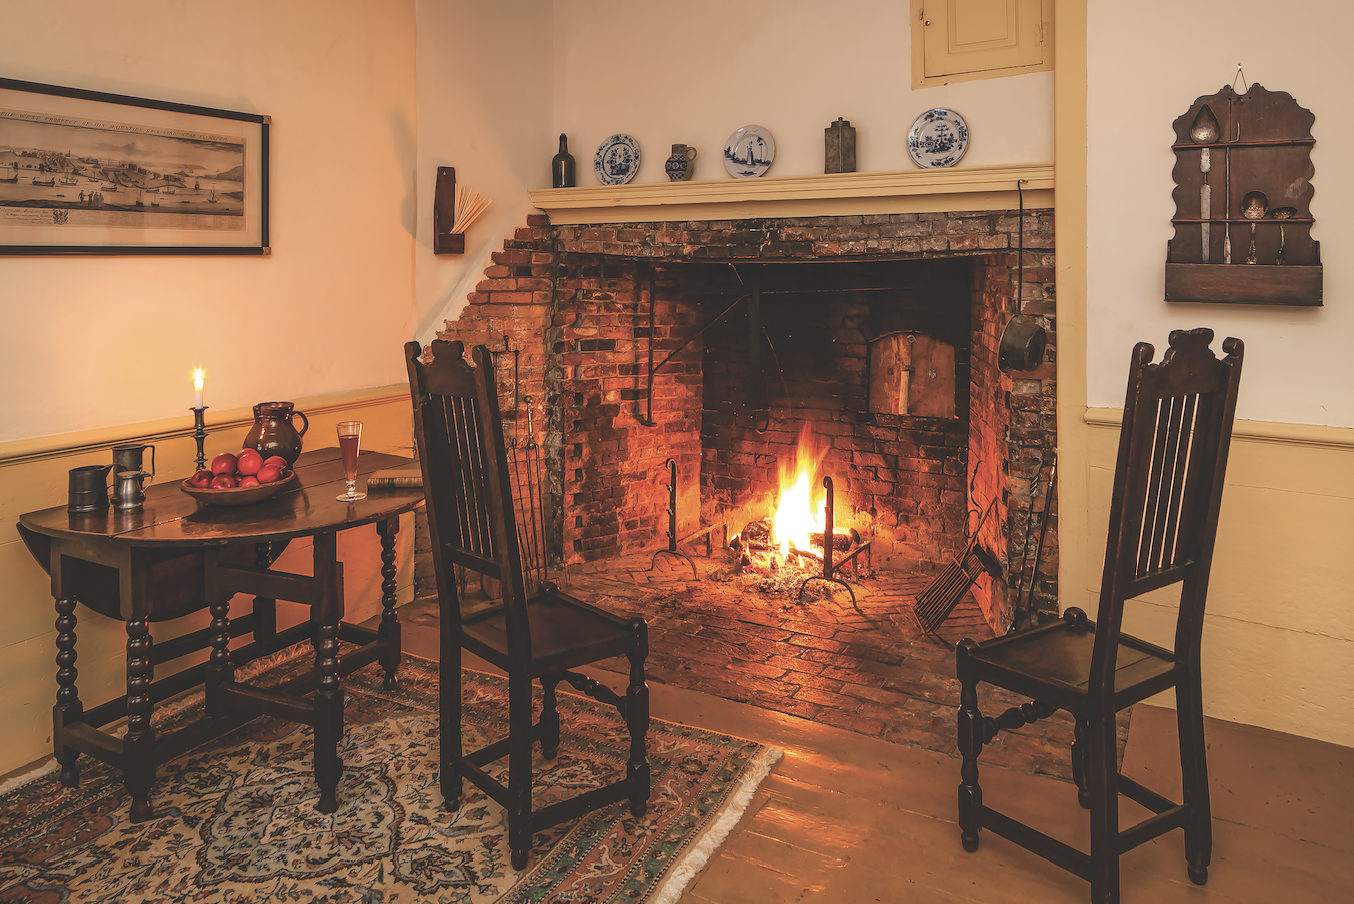 The owners frequently practice hearth cooking in the oldest part of the house.